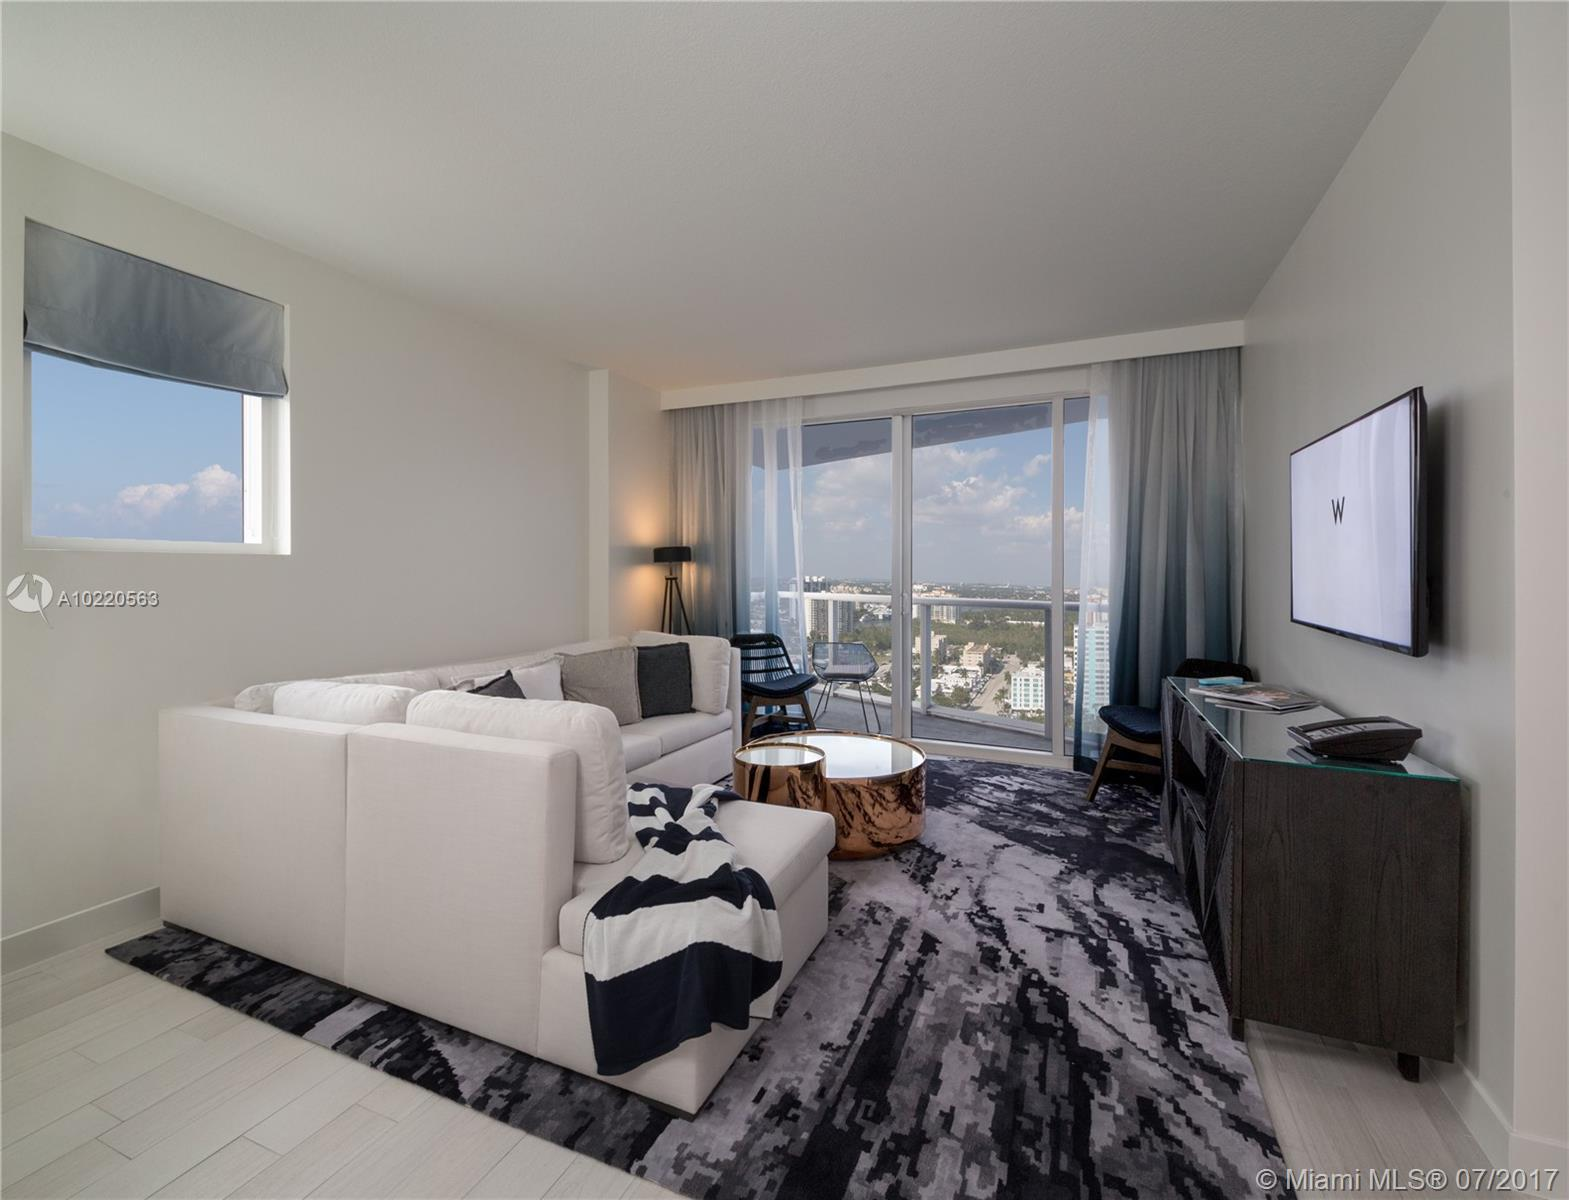 W Fort Lauderdale #1202 - 02 - photo